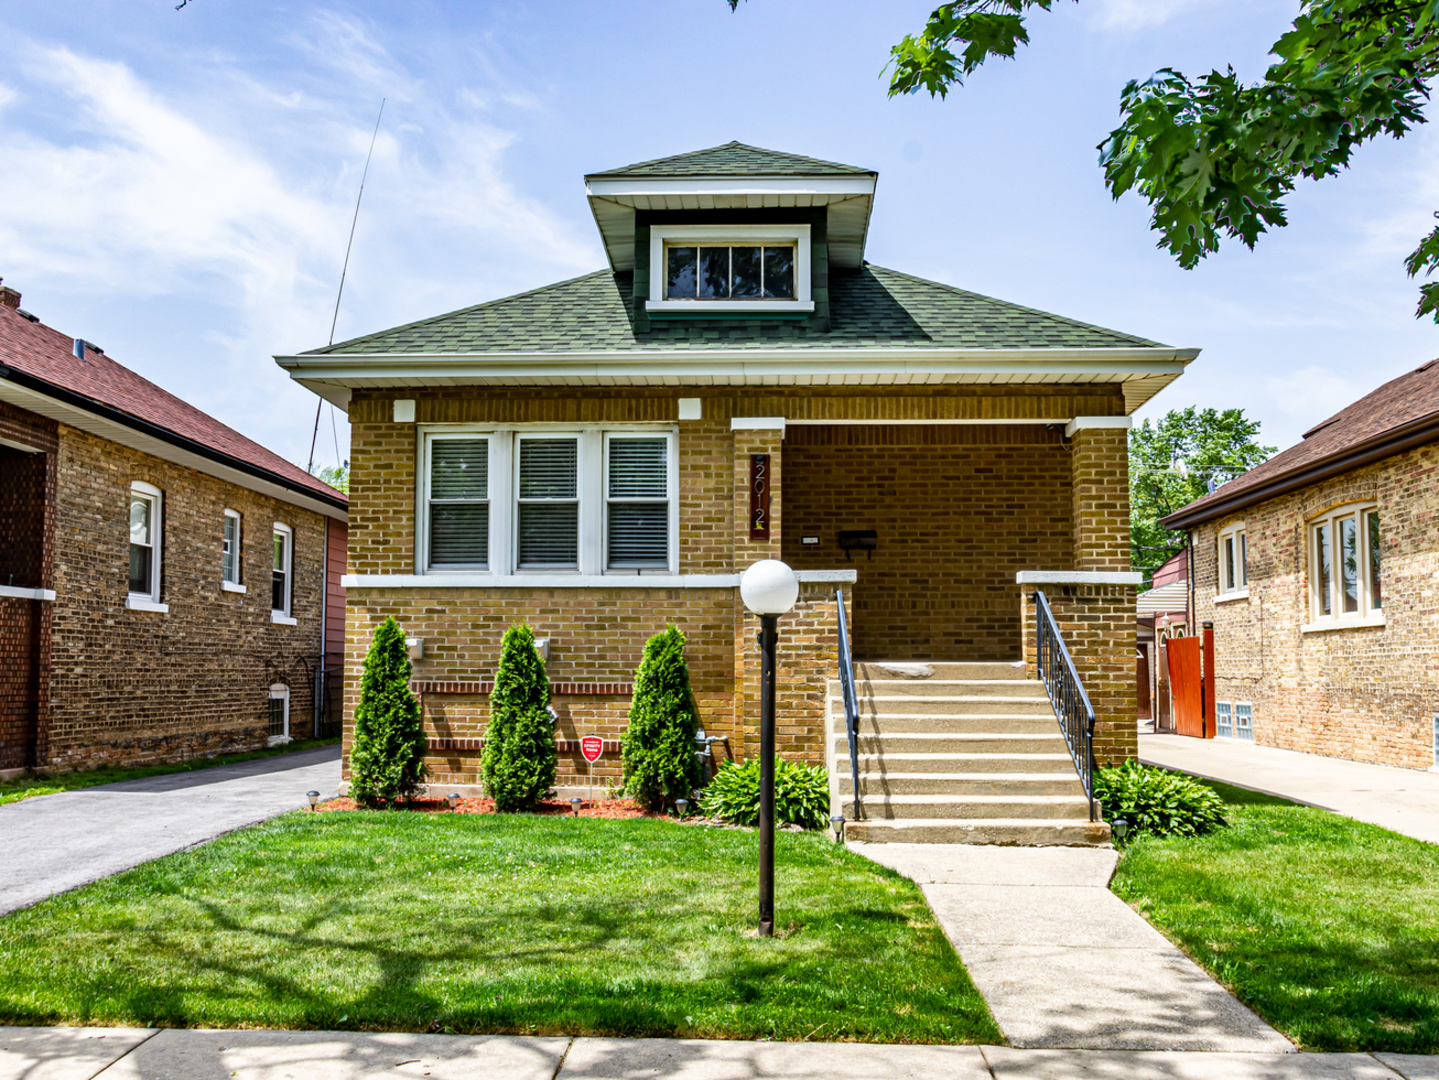 Photo for 2012 S 12th Avenue, Maywood, IL 60153 (MLS # 10767024)